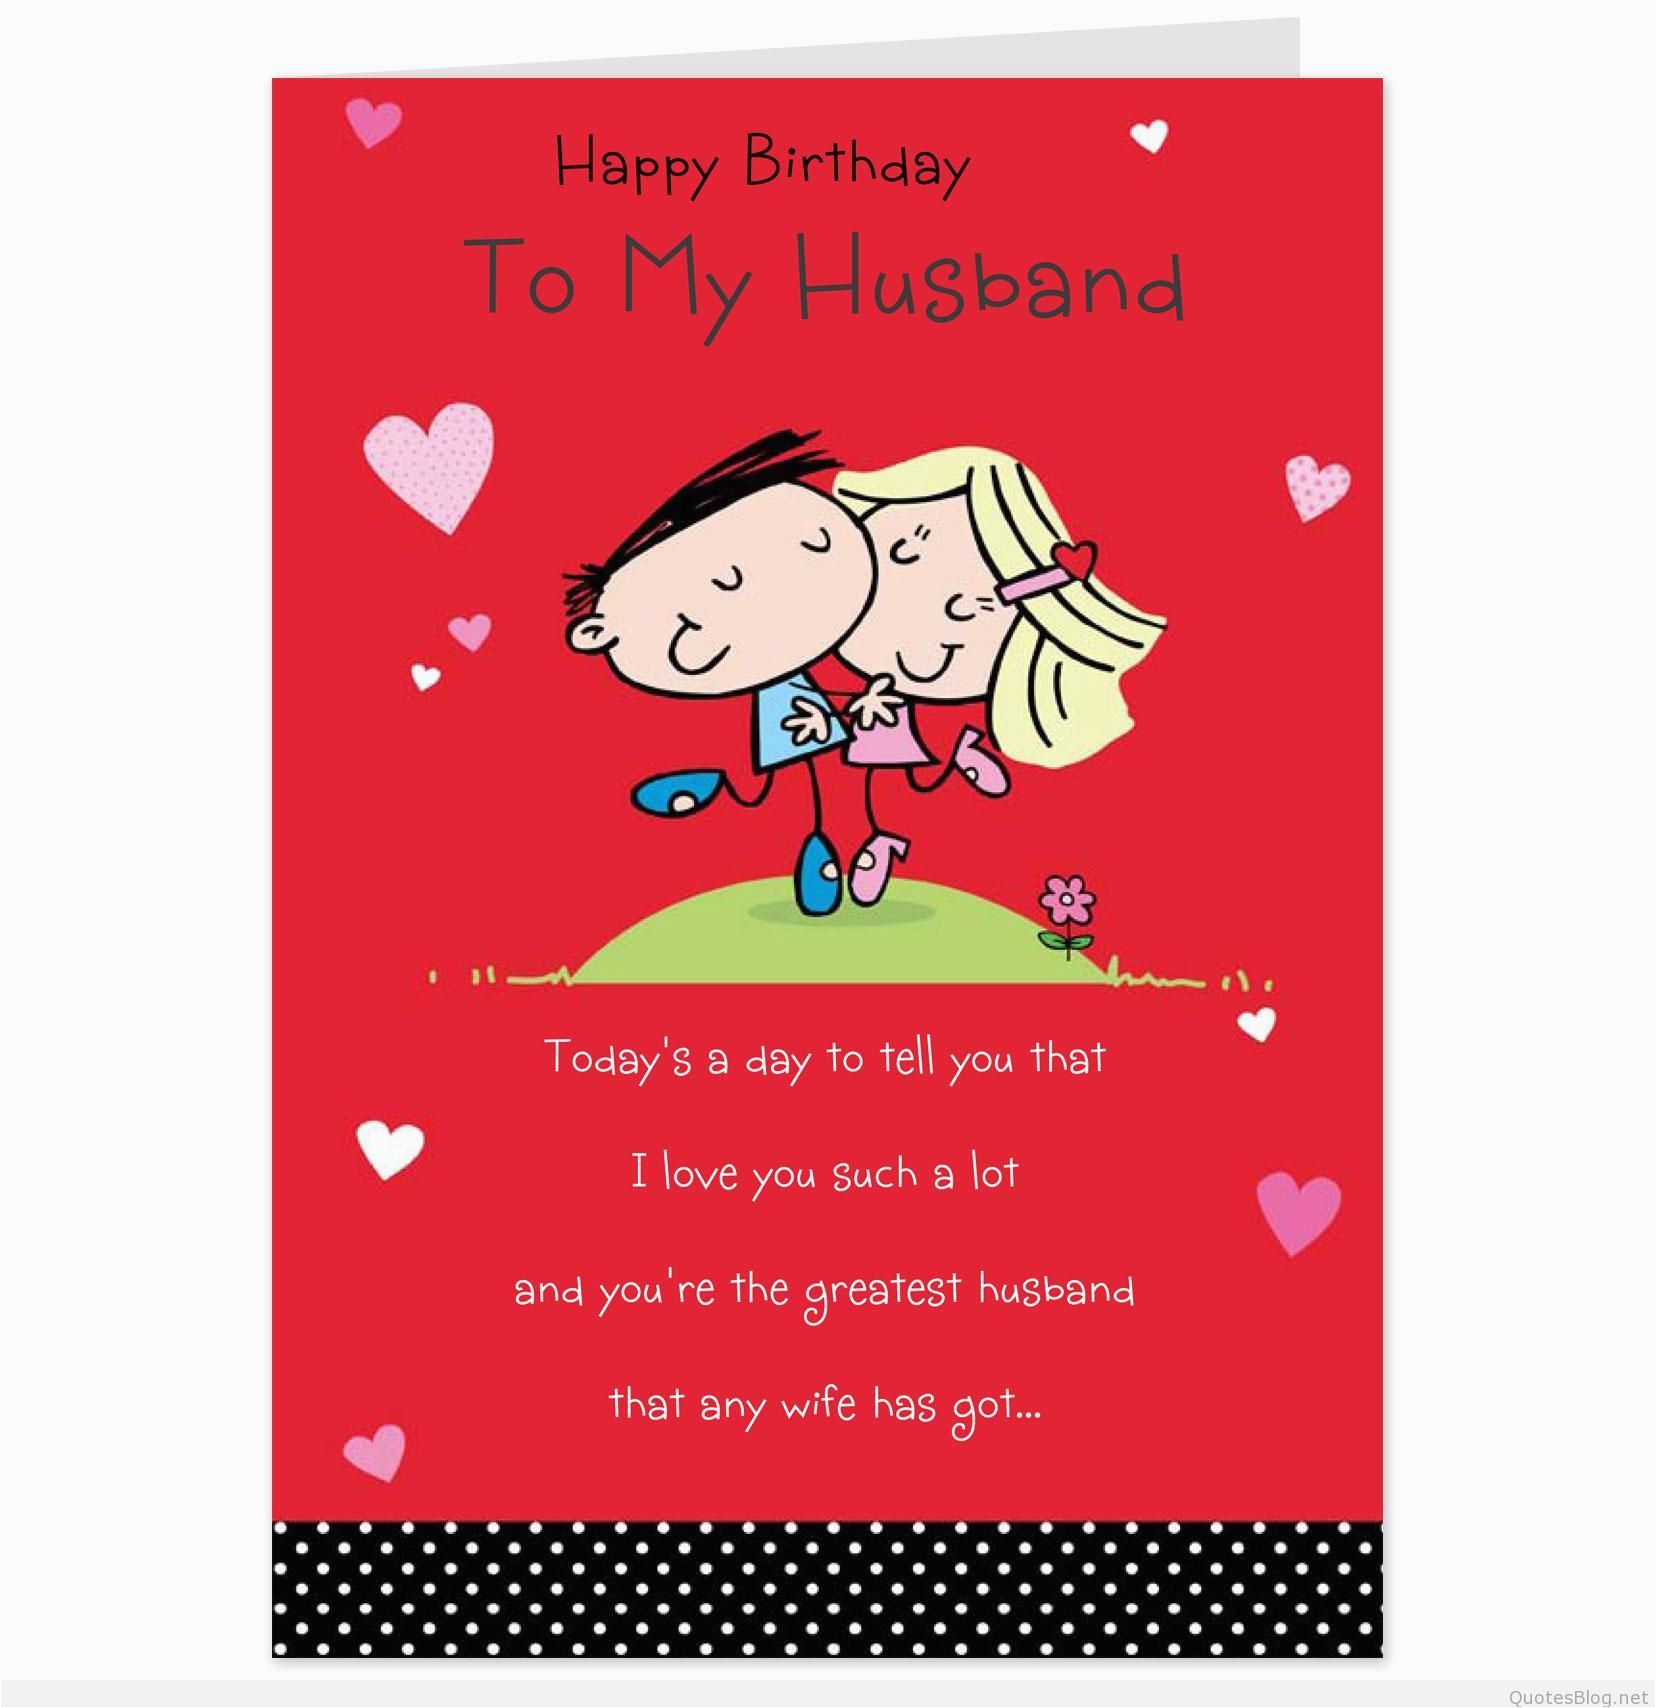 Birthday Cards For Husband On Facebook Romantic Love Messages